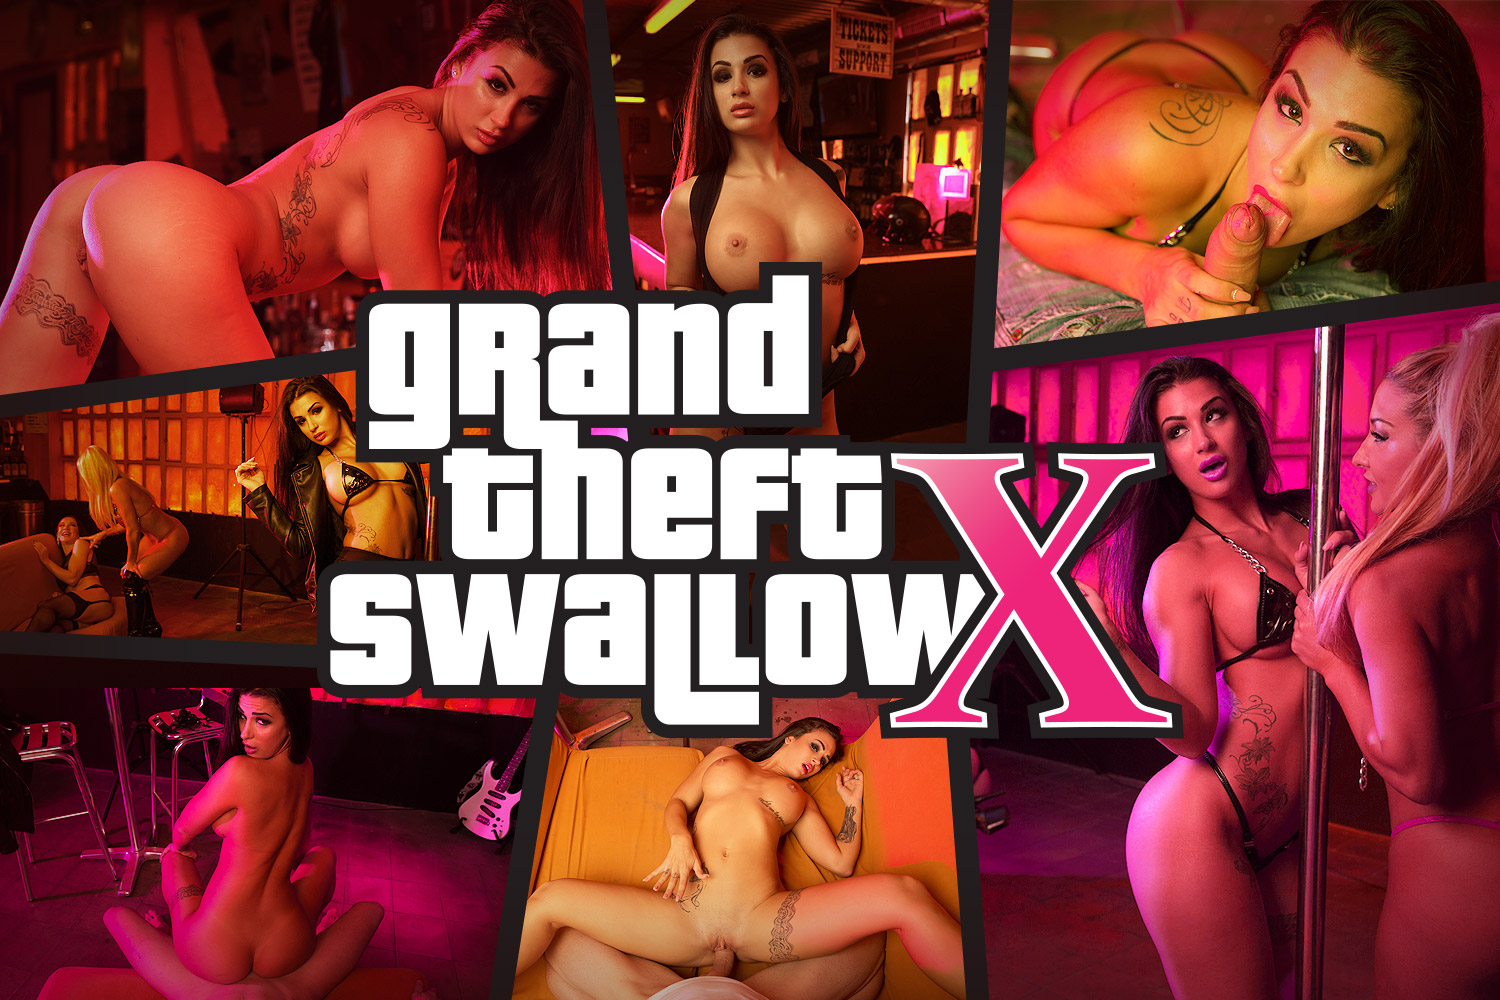 Fuck chicks in gta porn mouvies adult movies